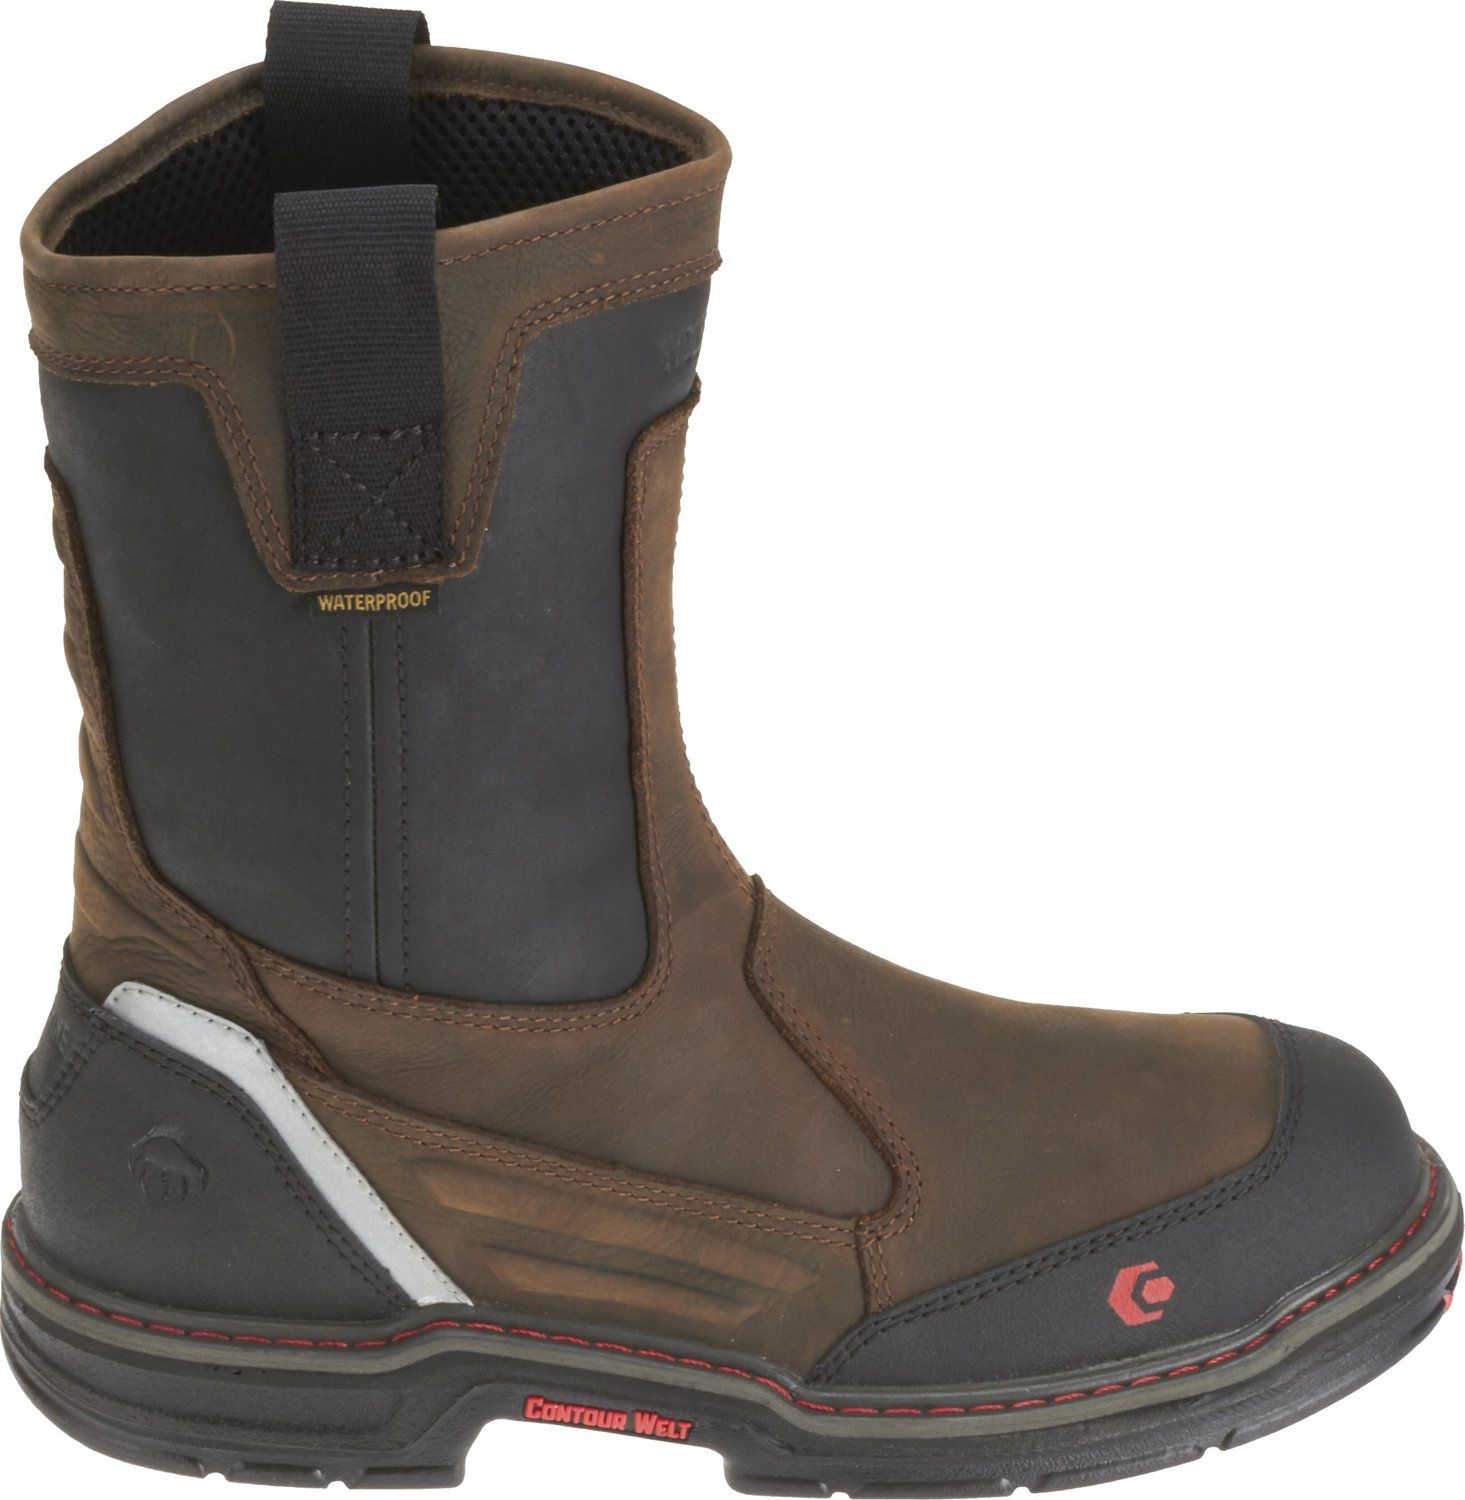 Best Work Boots For Flat Feet Wolverine Boots Good Work Boots Work Boots